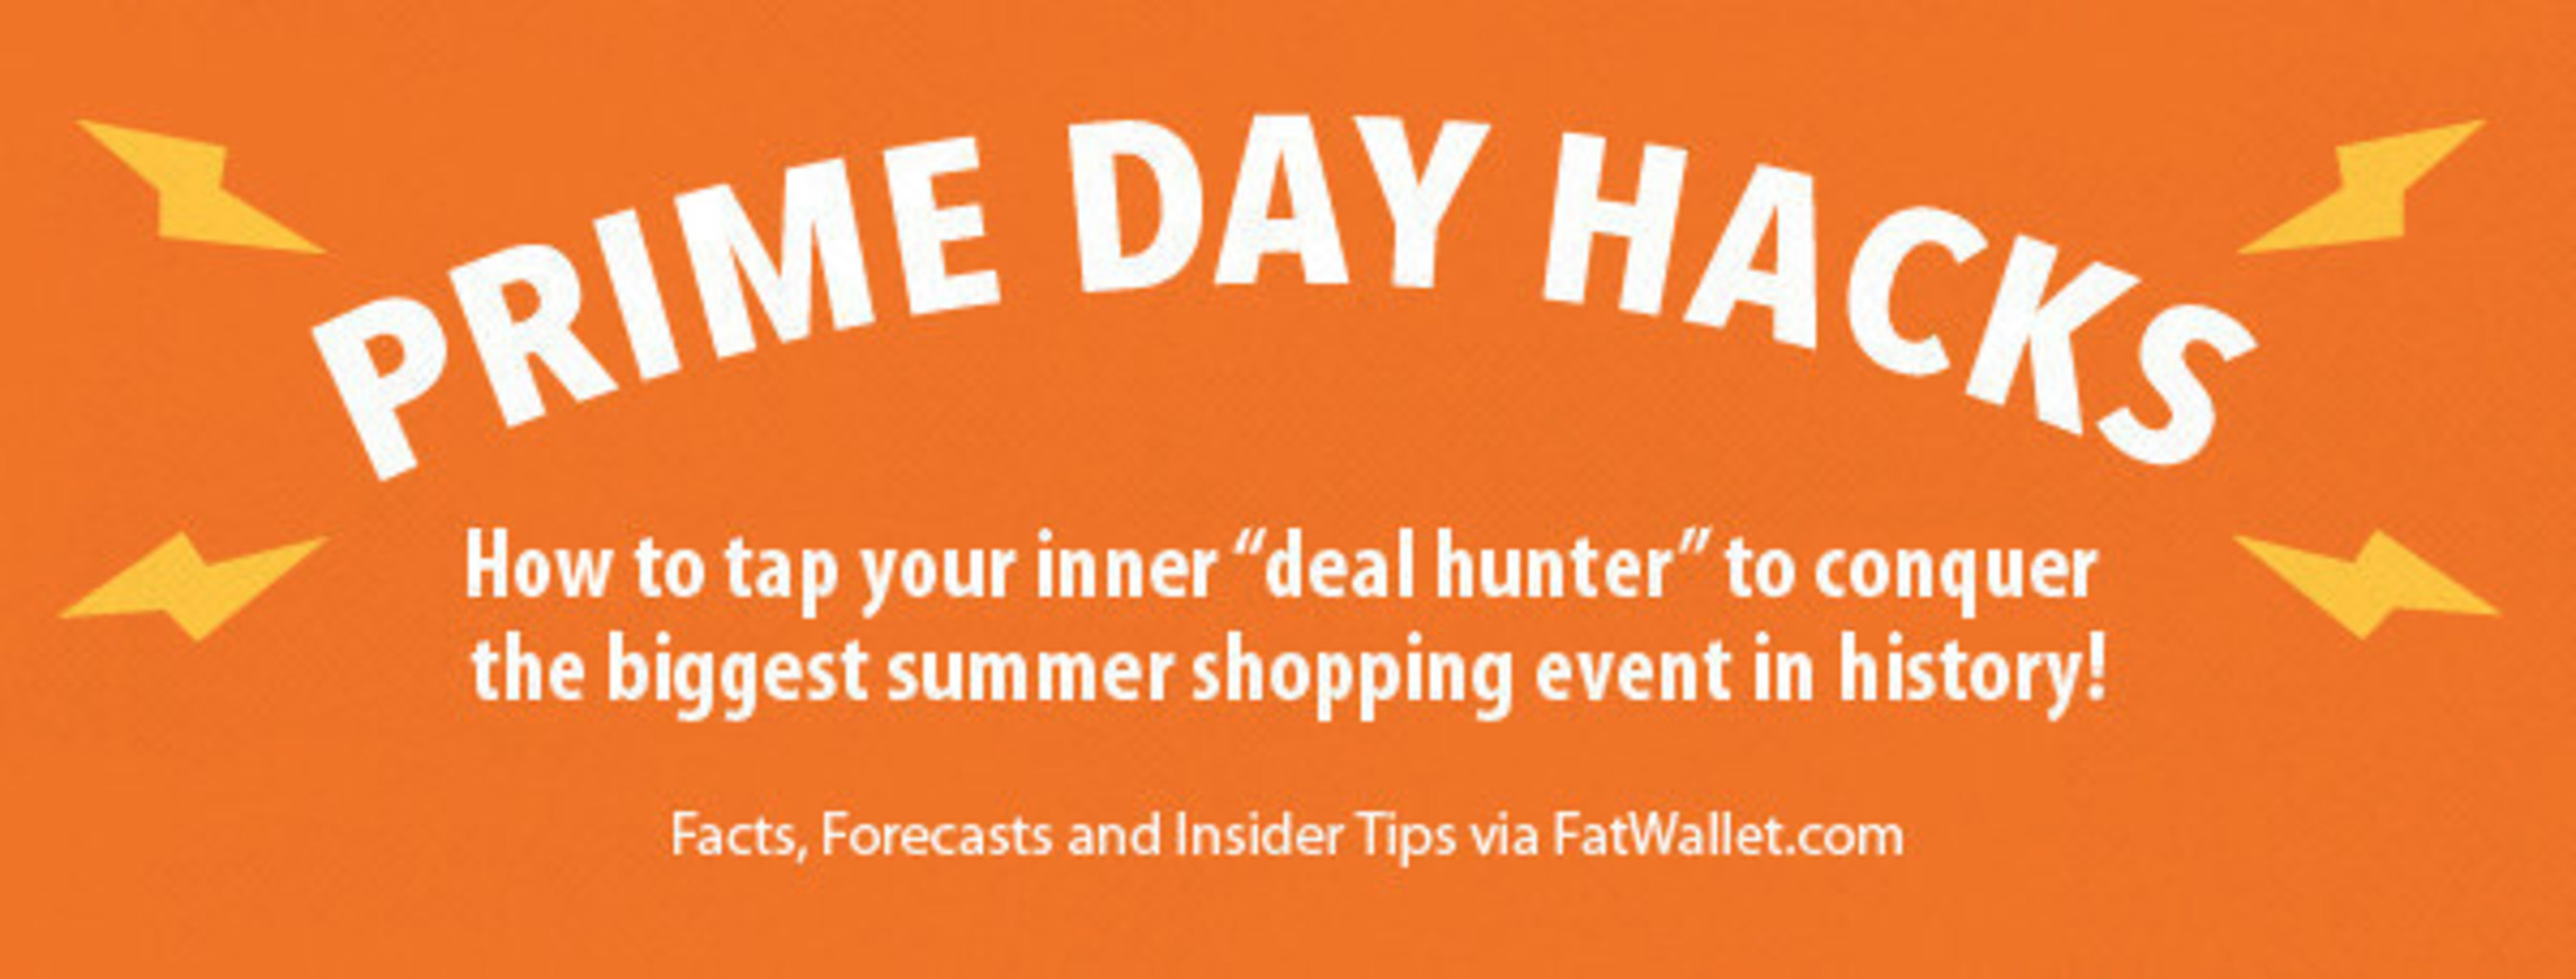 Hacking Prime Day Deals: Facts, Predictions and Insider Tips from FatWallet